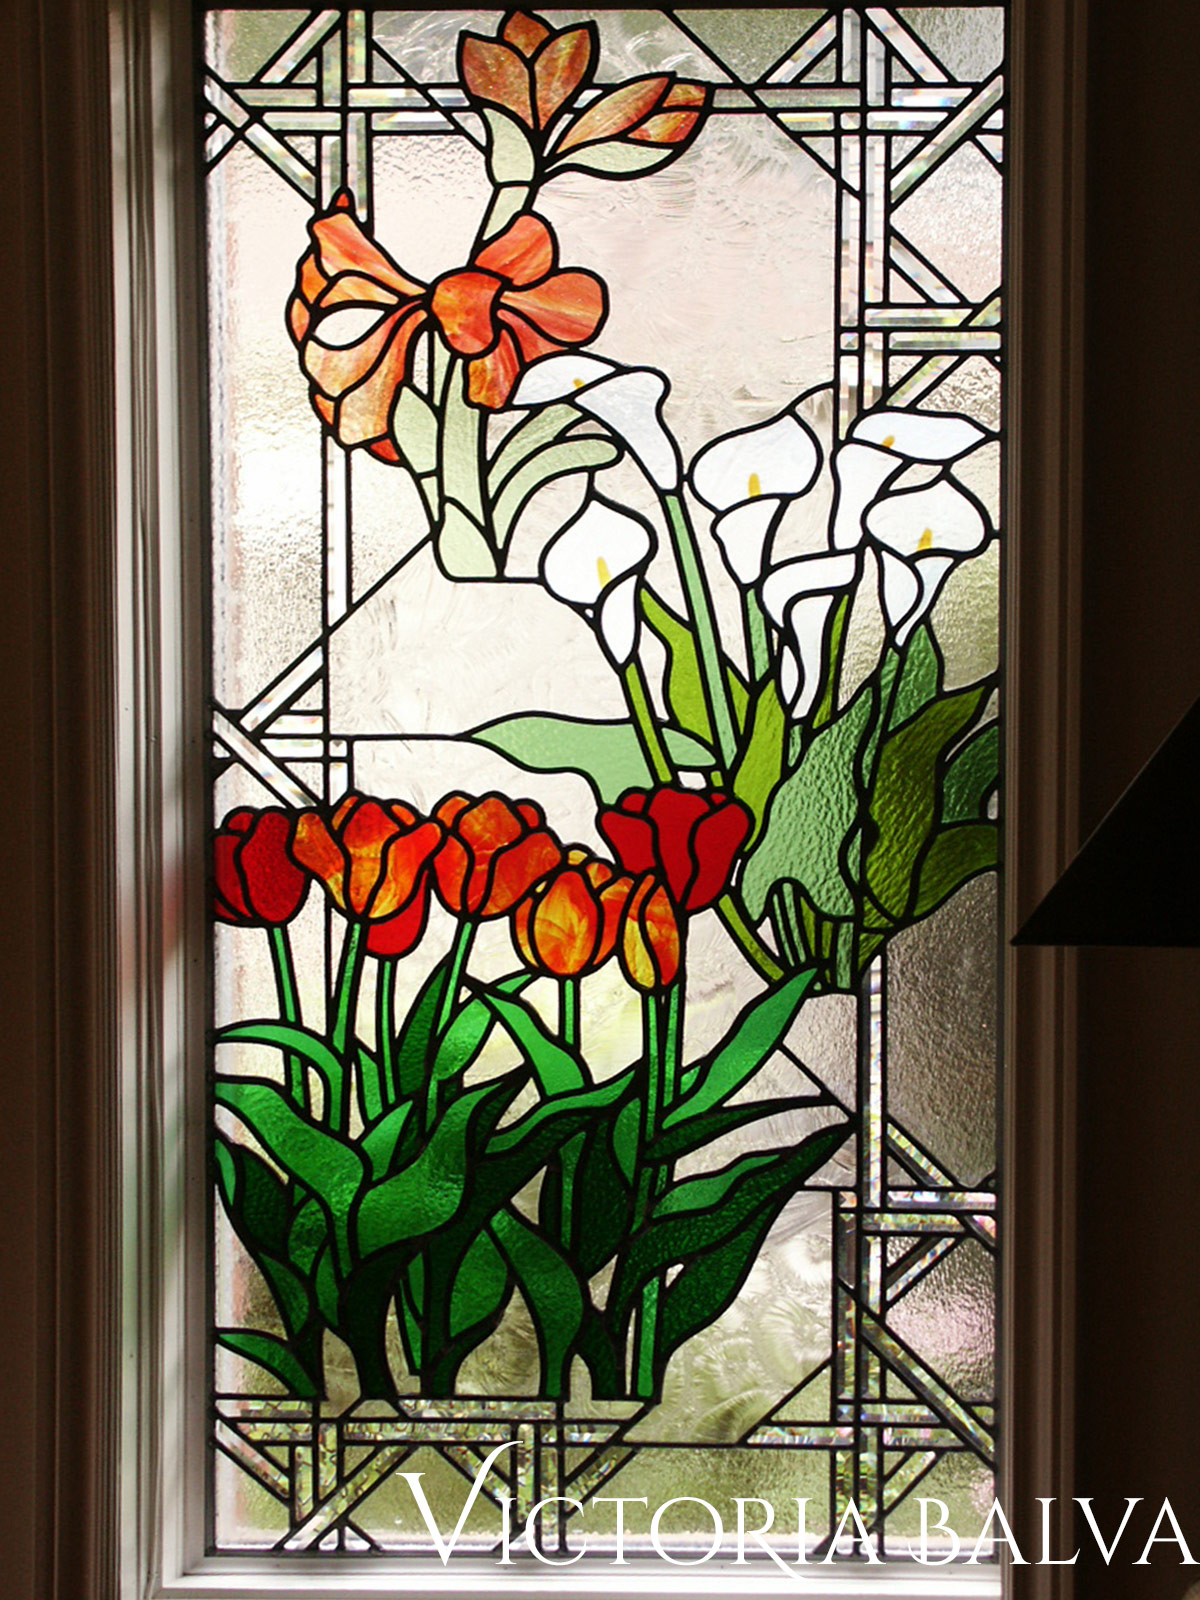 Stained and leaded glass window. Flower garden. Amoralis, Tulips, Lilias. Overall view of the window